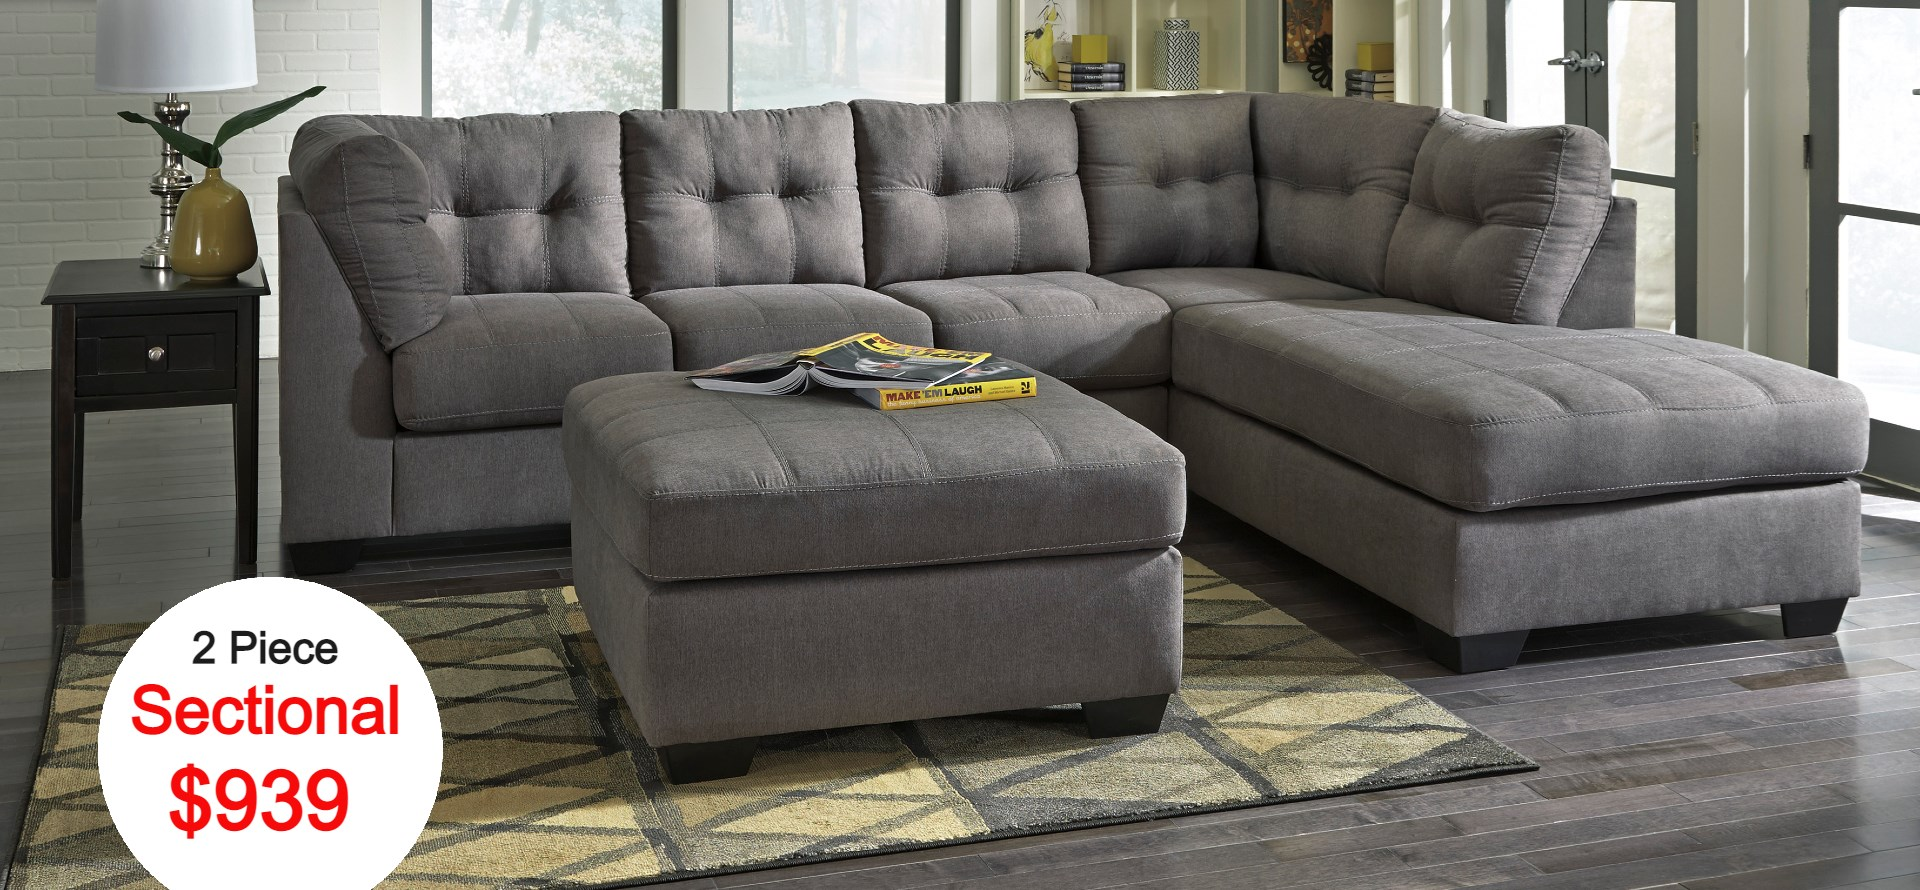 Sectional $939